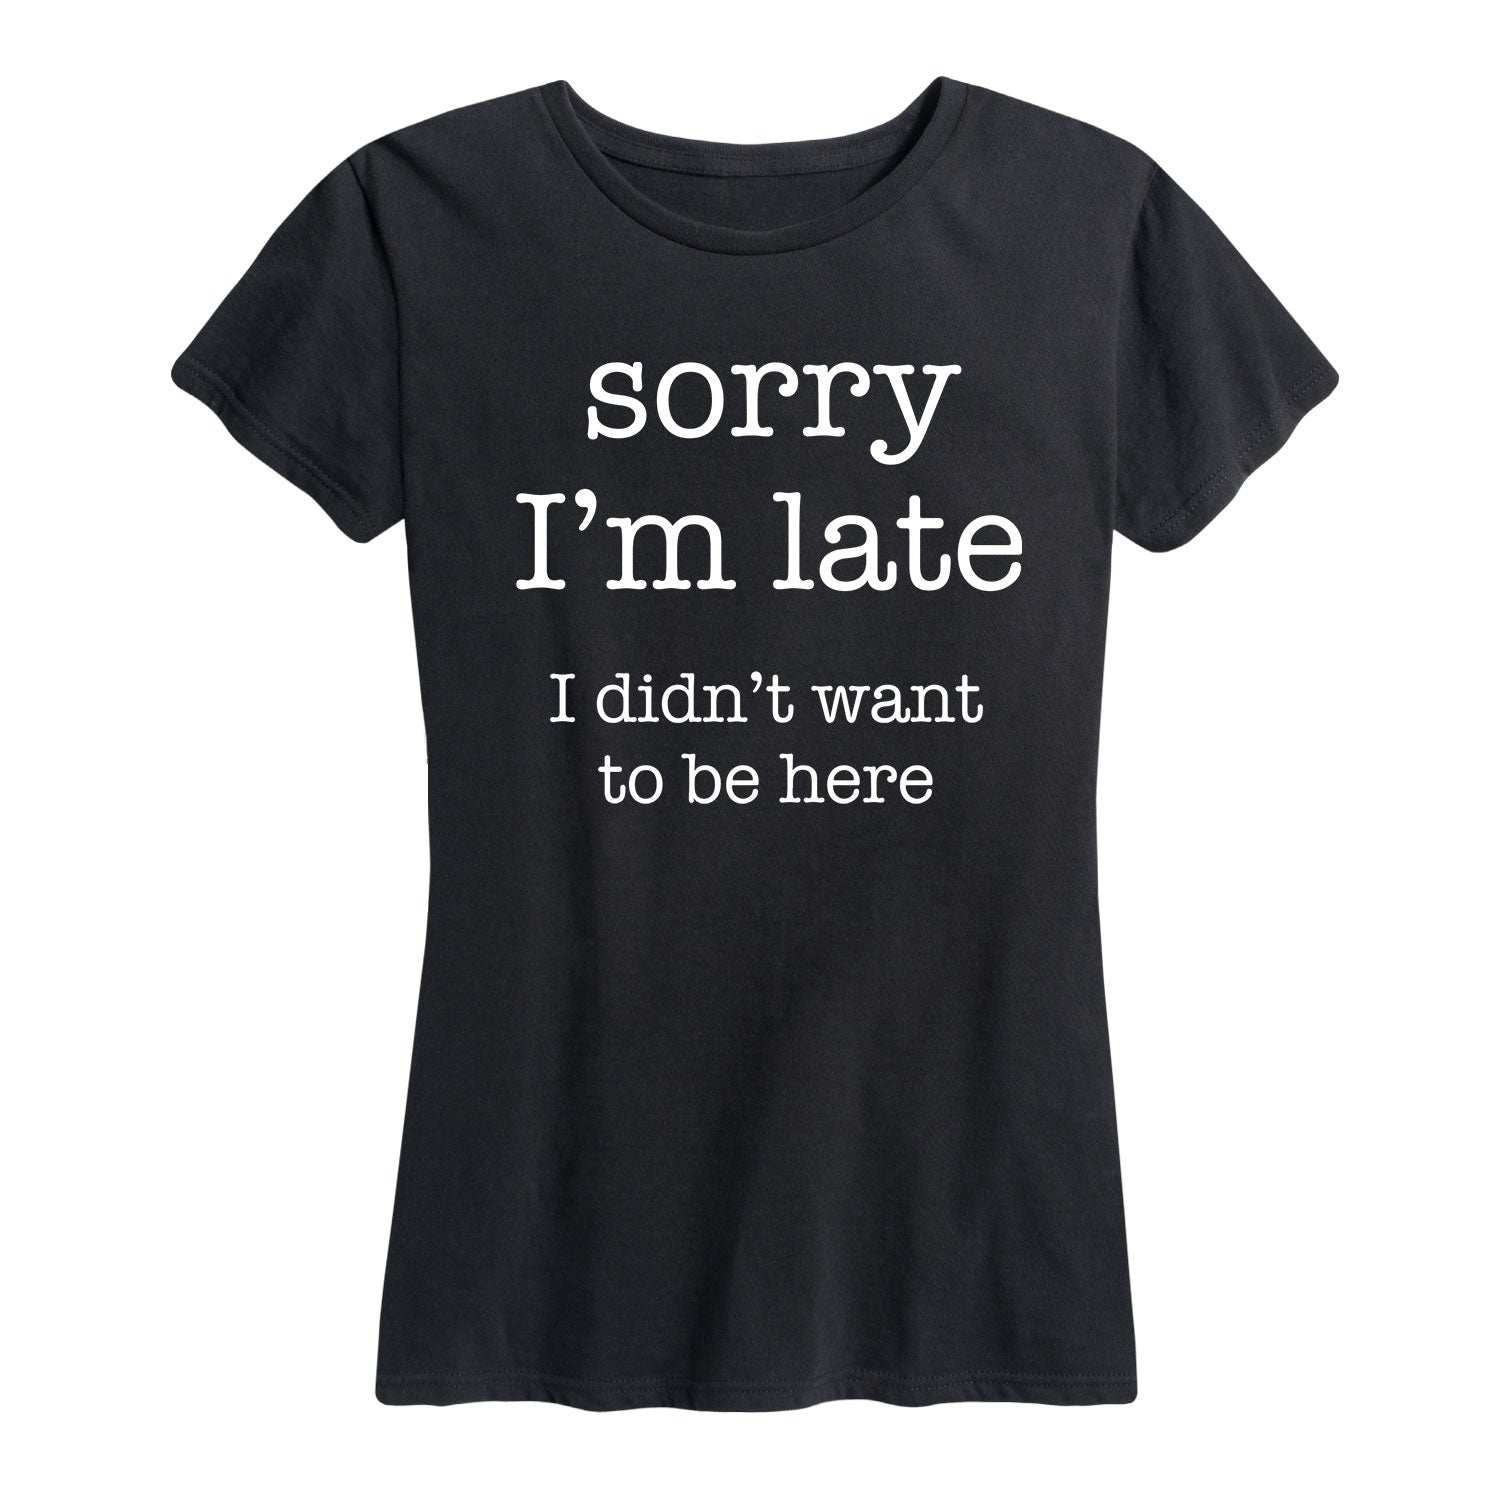 Late Didn't Want To Be Here - Women's Short Sleeve T-Shirt